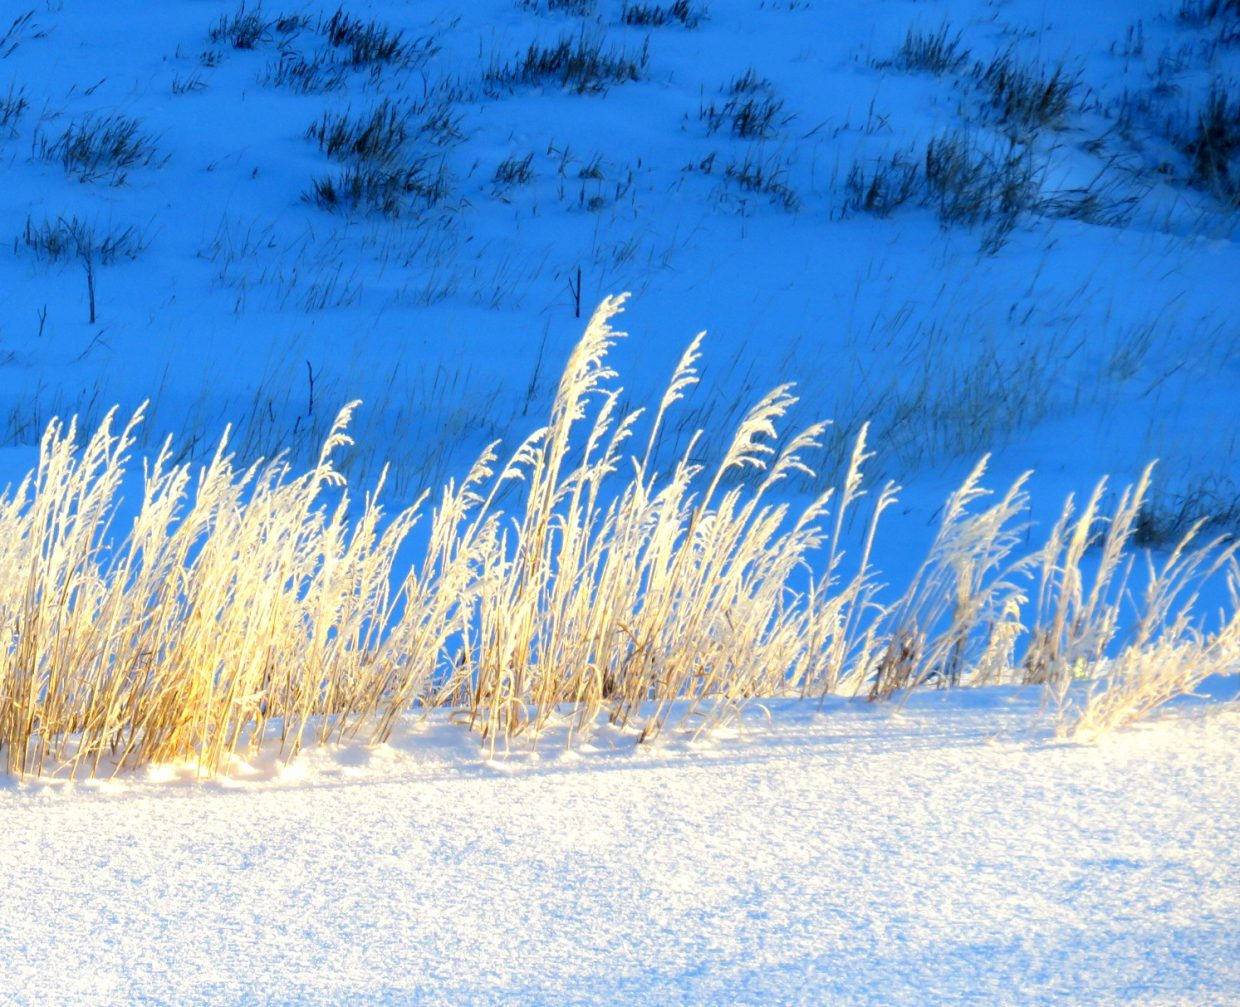 Sun catches dry grass, painting it gold.